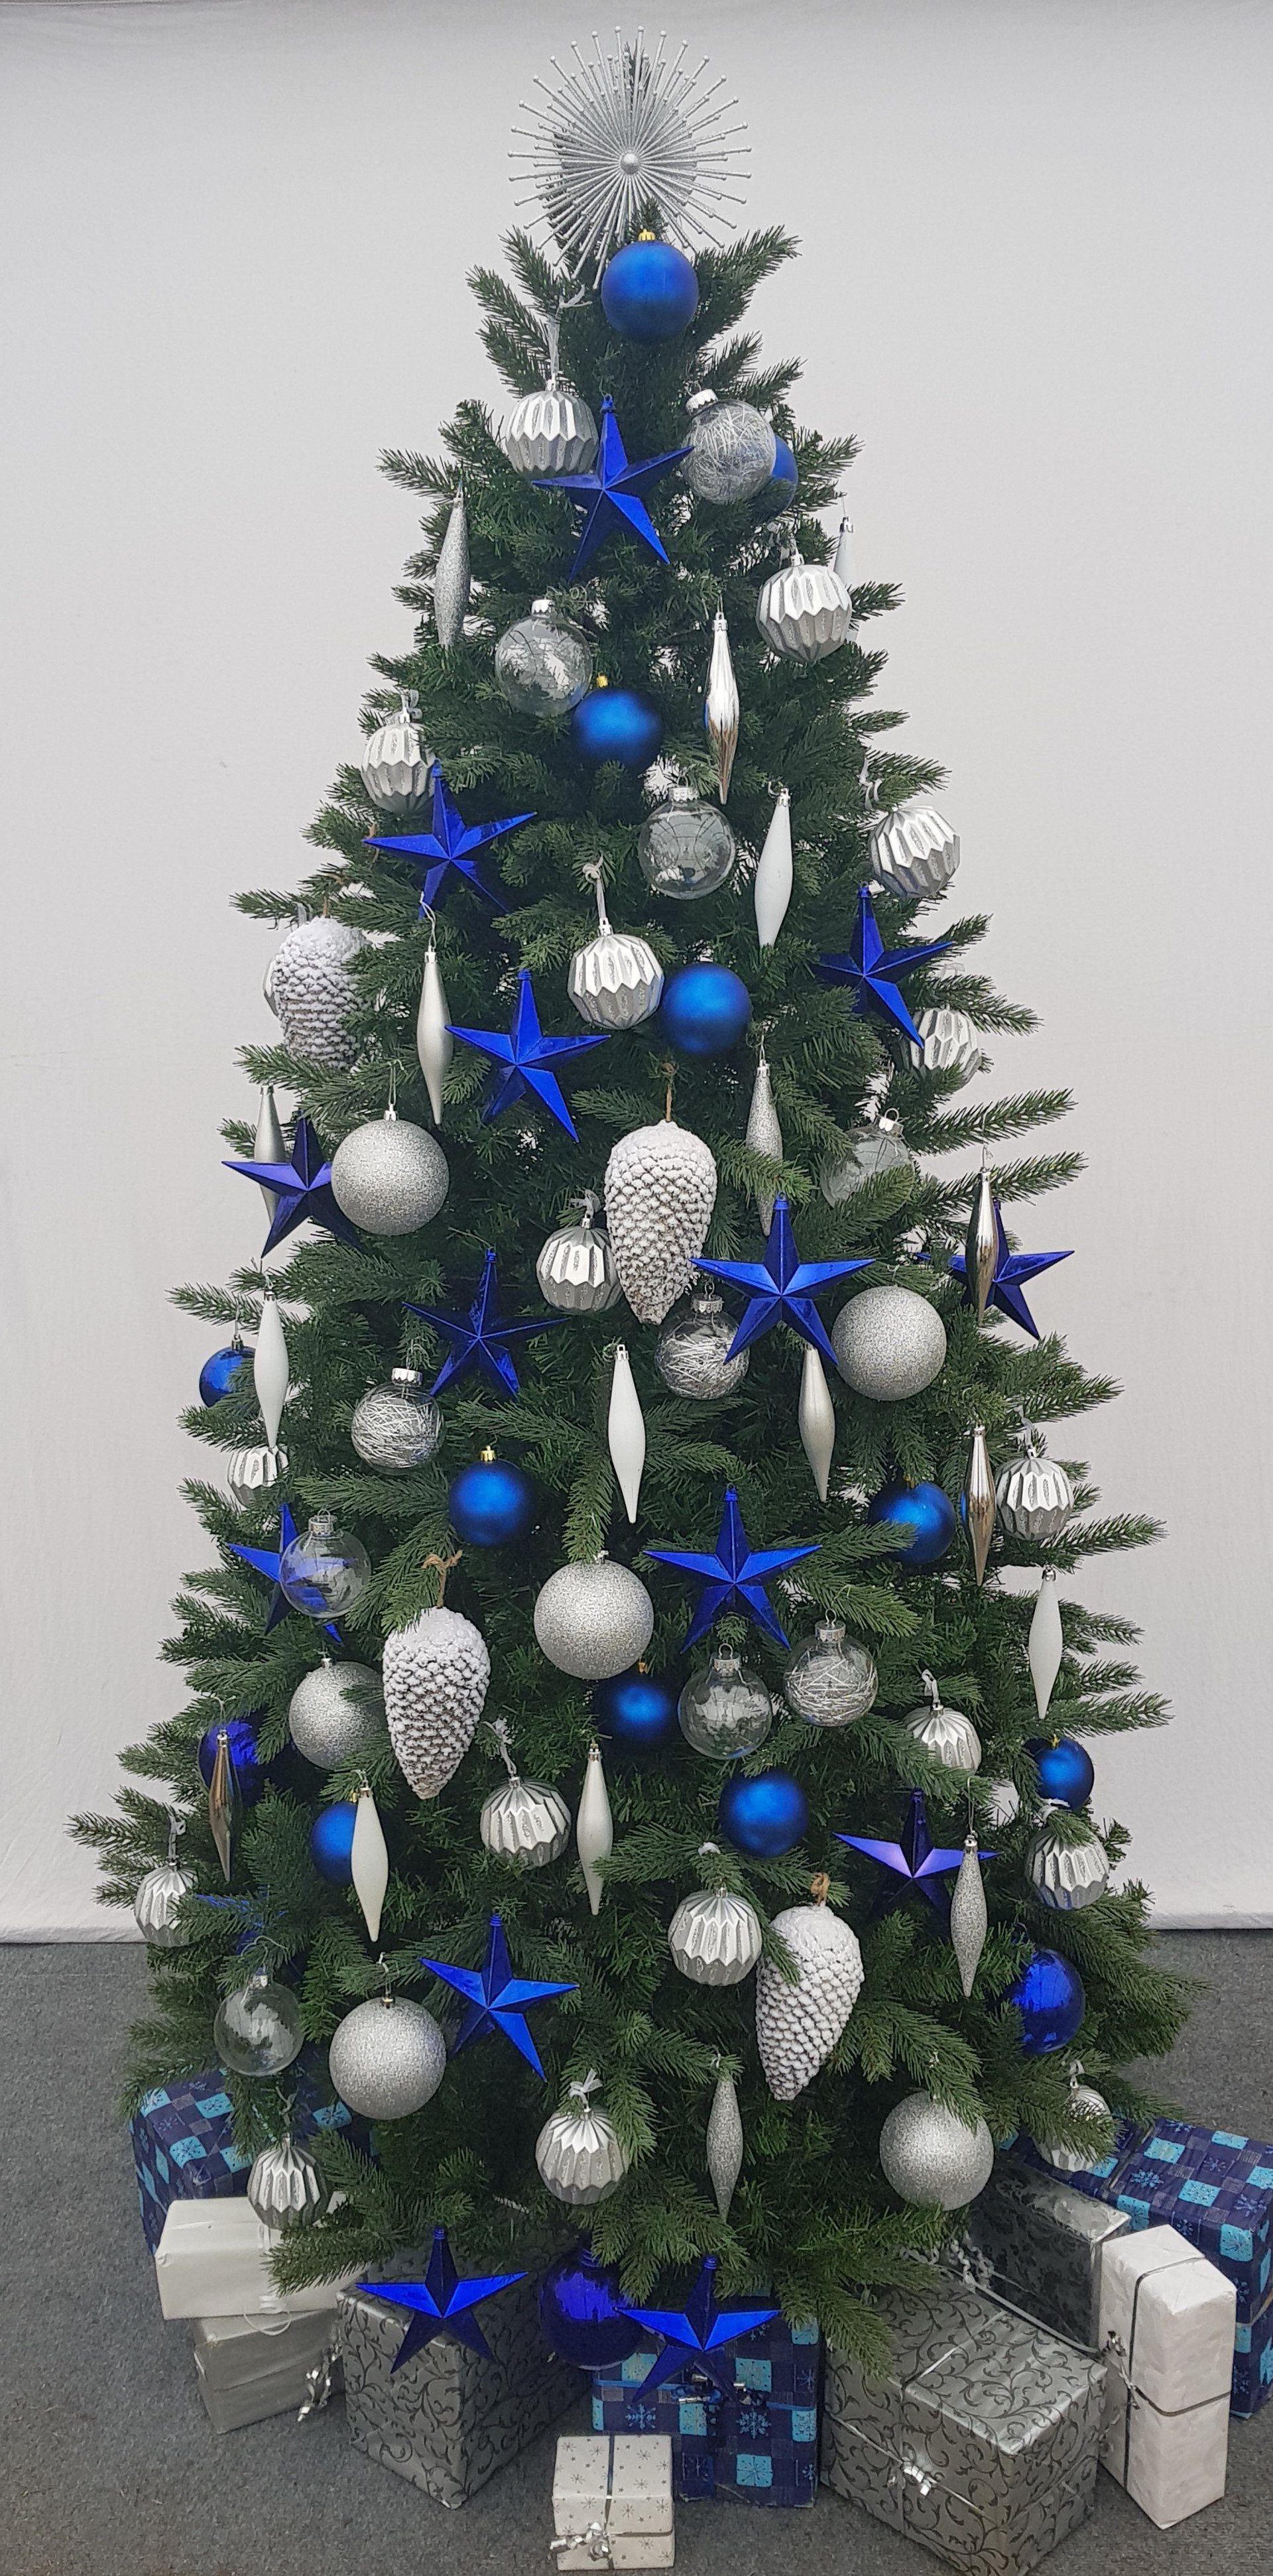 Inspiration | Christmas Tree Hire for Offices & Businesses in ...